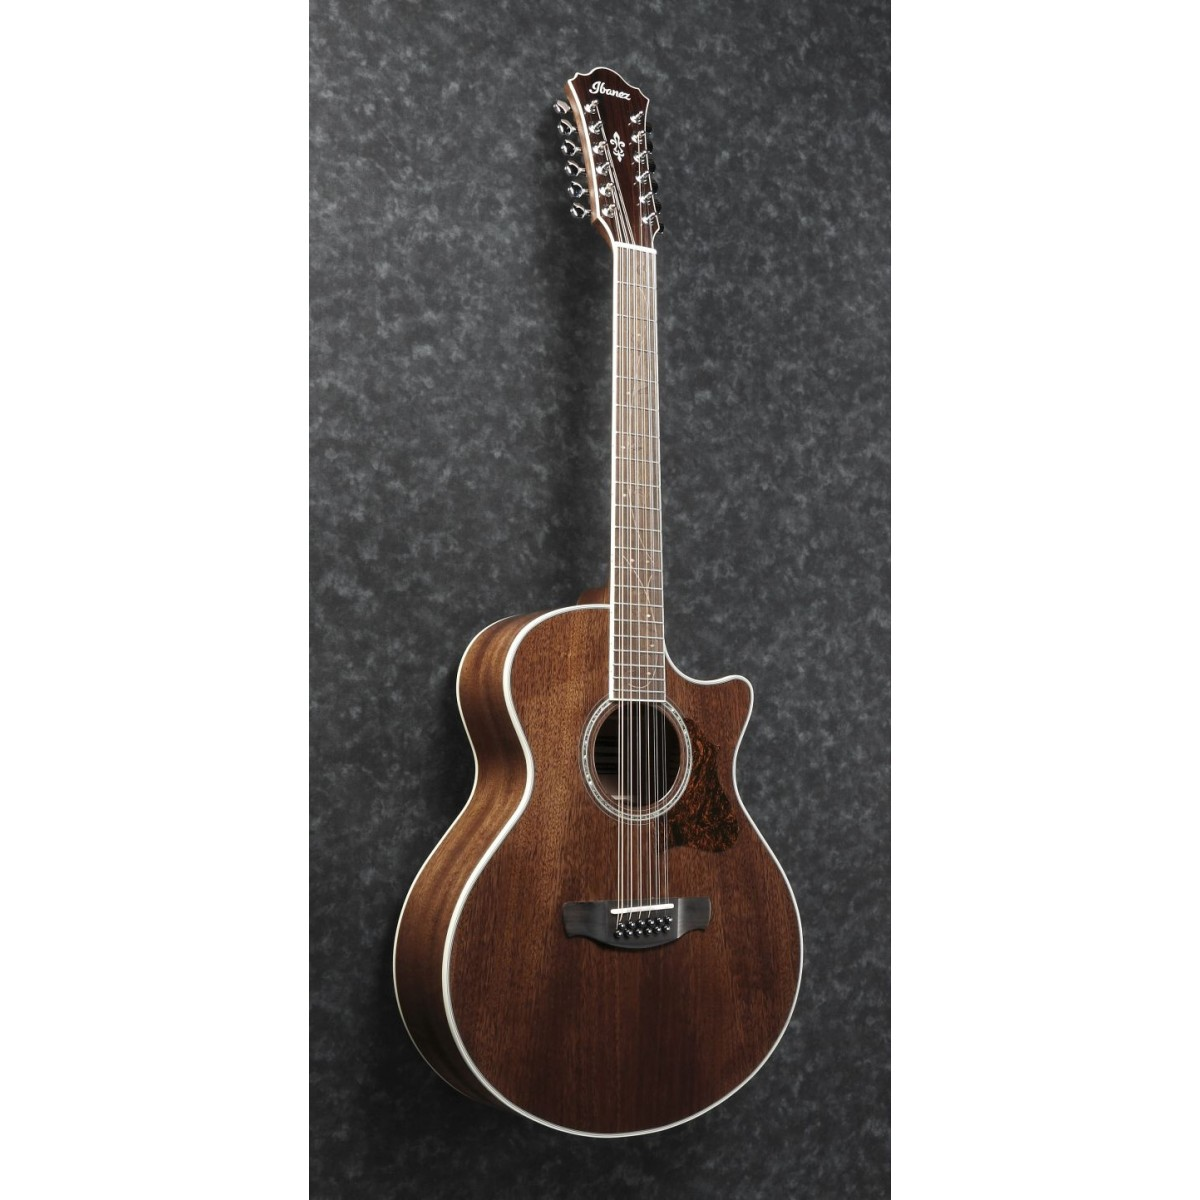 ibanez ae2412 nt acoustic electric guitar 12 string natural high gloss 2019. Black Bedroom Furniture Sets. Home Design Ideas